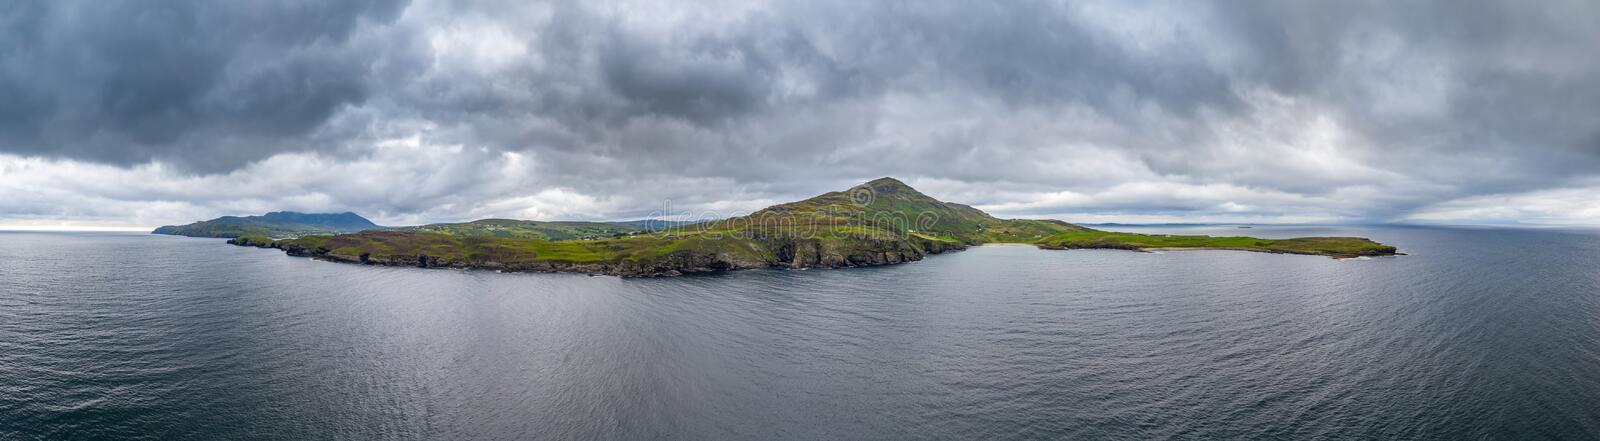 Mucross Head is a small peninsula about 10km west of Killybegs in County Donegal in north-west Ireland and contains a. Popular rock-climbing area, noted for its royalty free stock photography